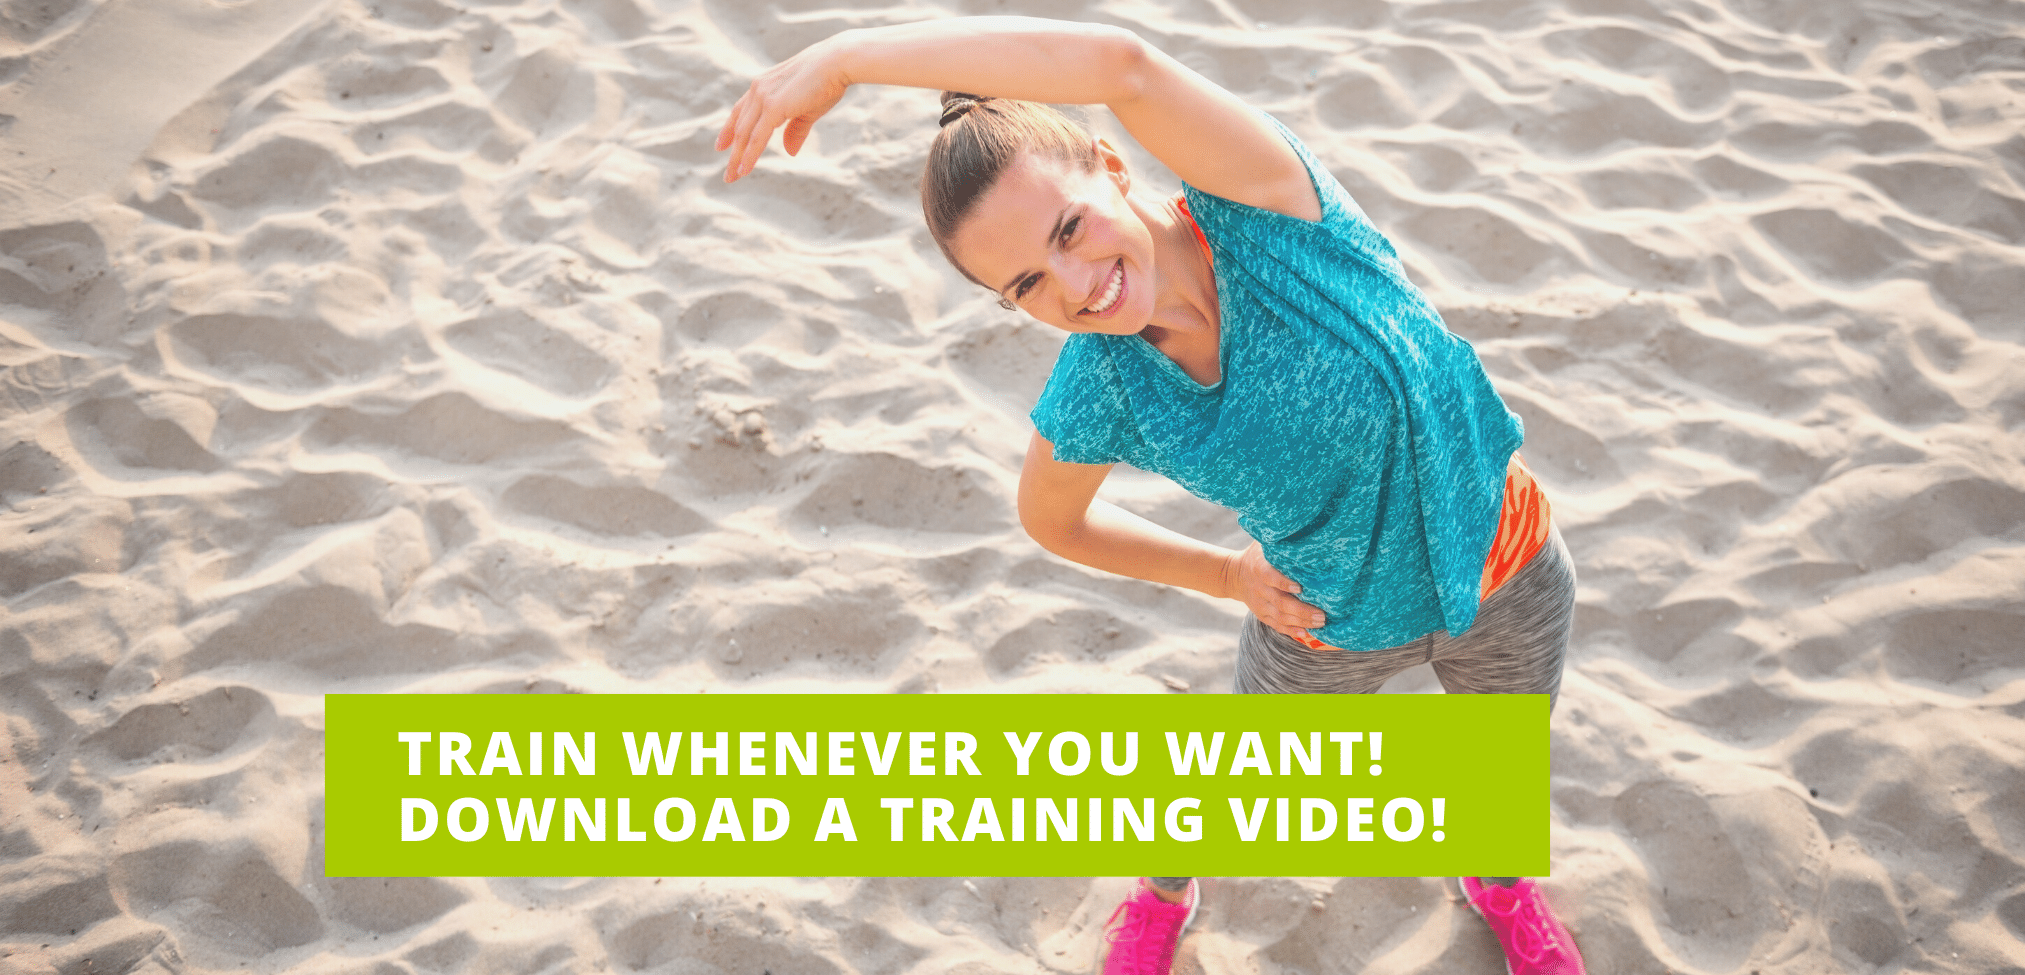 Vita health and fitness video